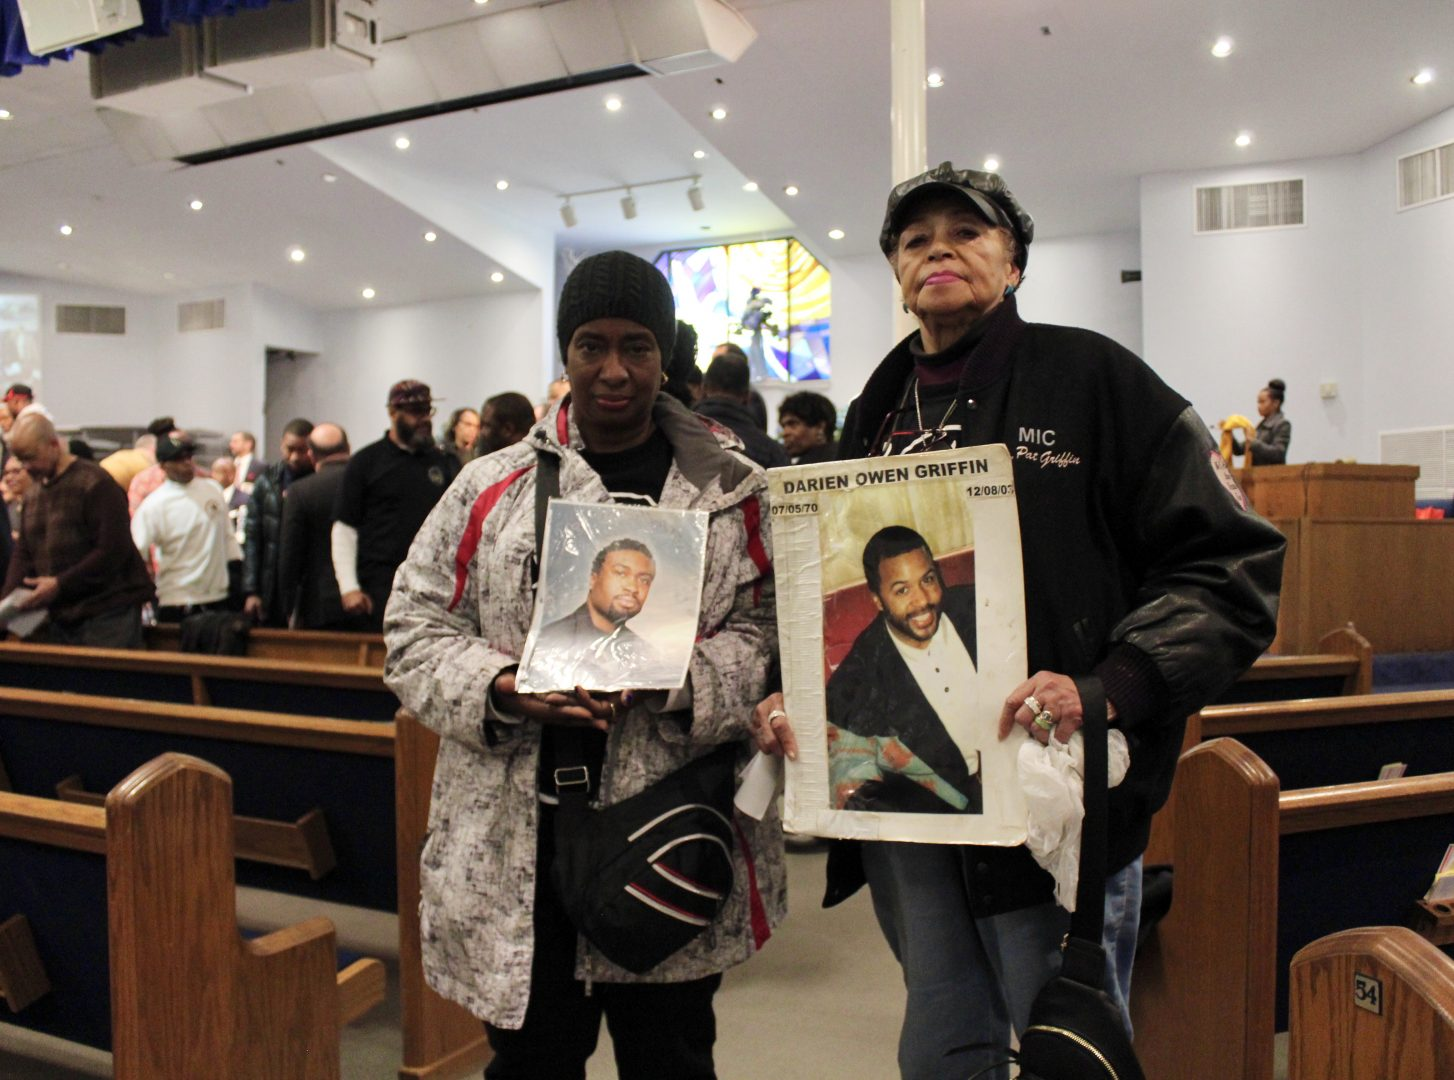 Valerie Jackson and Dr. Patricia Griffin stand between the pews in the church, facing the camera. They are holding posters with the photos of their sons, who were murdered. The poster of Griffin's son also includes his name, Darien Owen Griffin, and the dates of his birth and death.